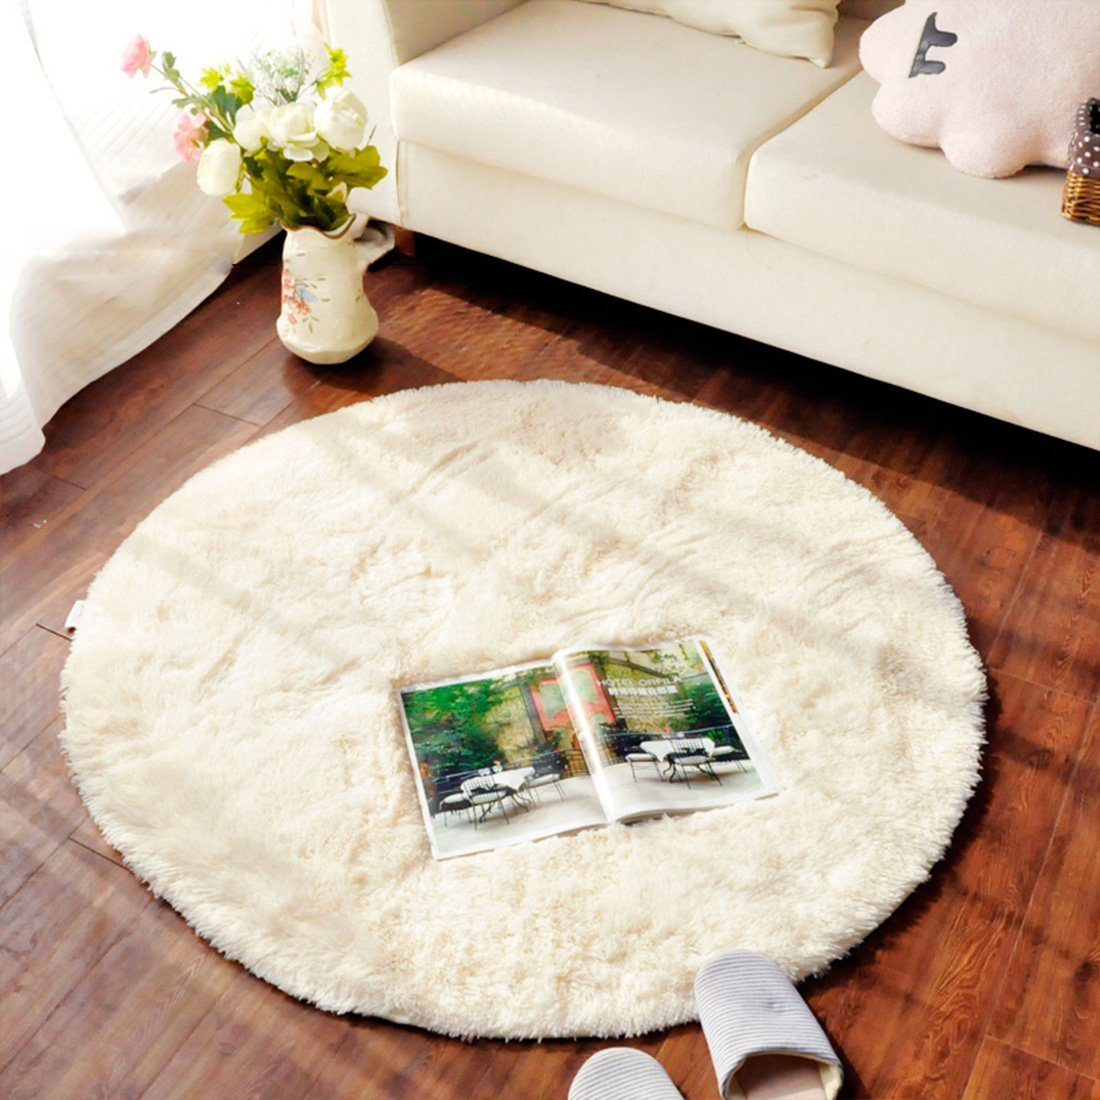 Amazon.com: ONEONEY Round Shaggy Area Rugs and Carpet Super Soft ...